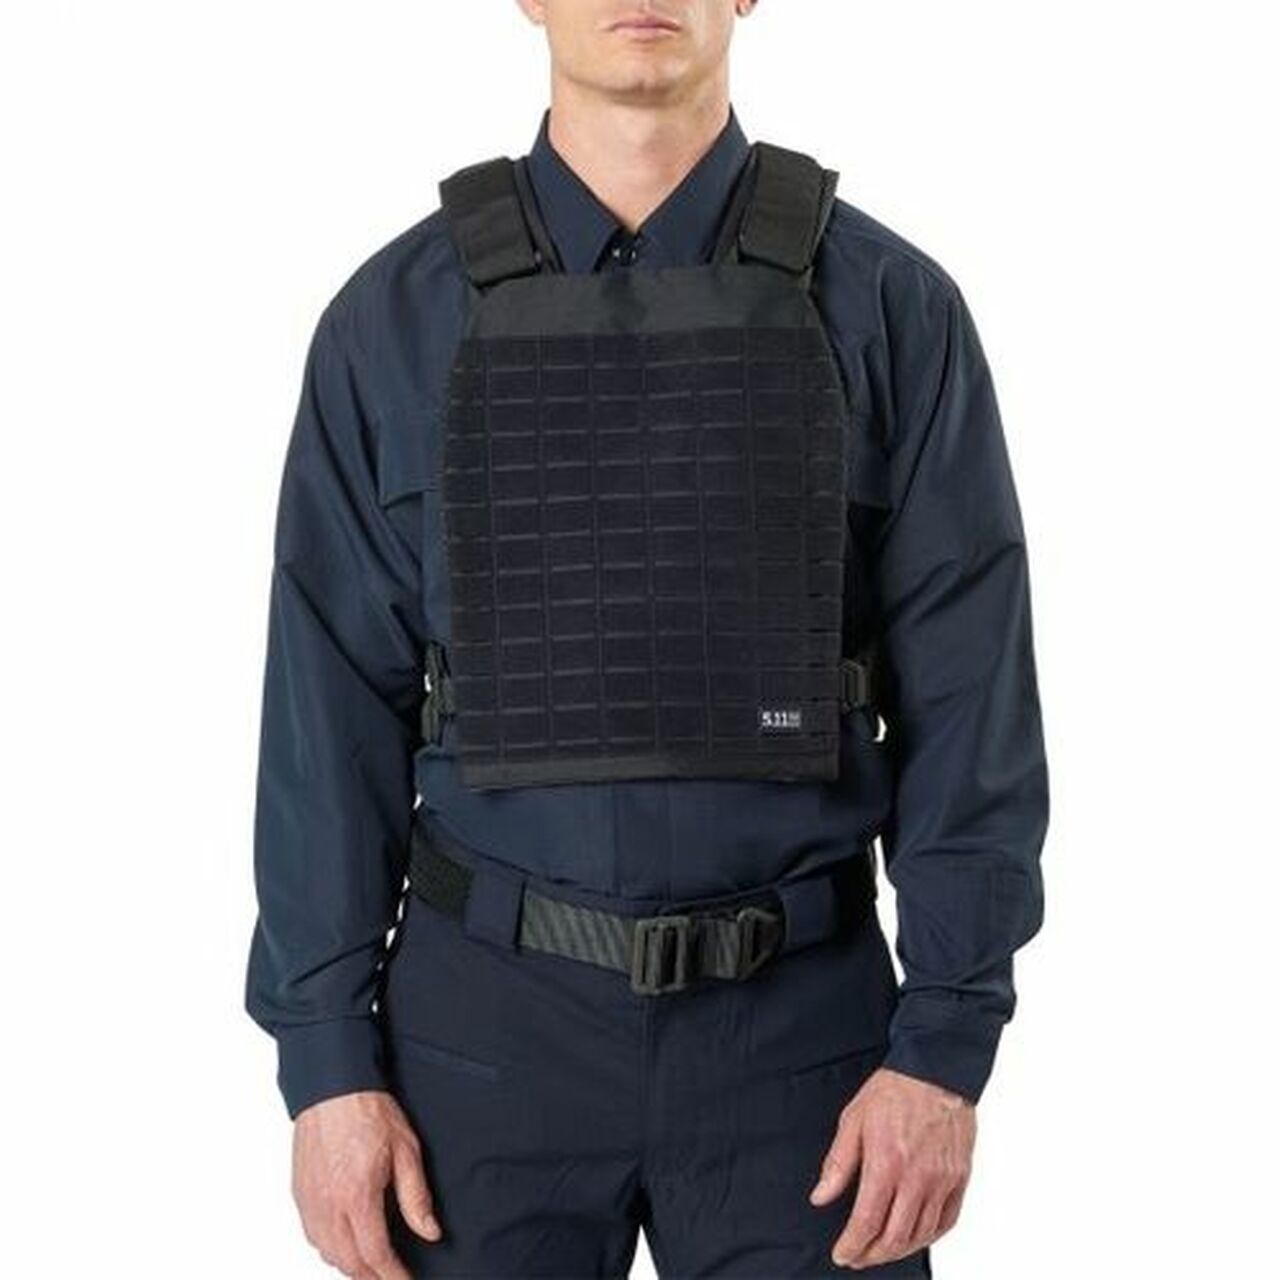 5.11 Tactical Taclite® Plate Carrier, available in Black, or Sandstone 56166